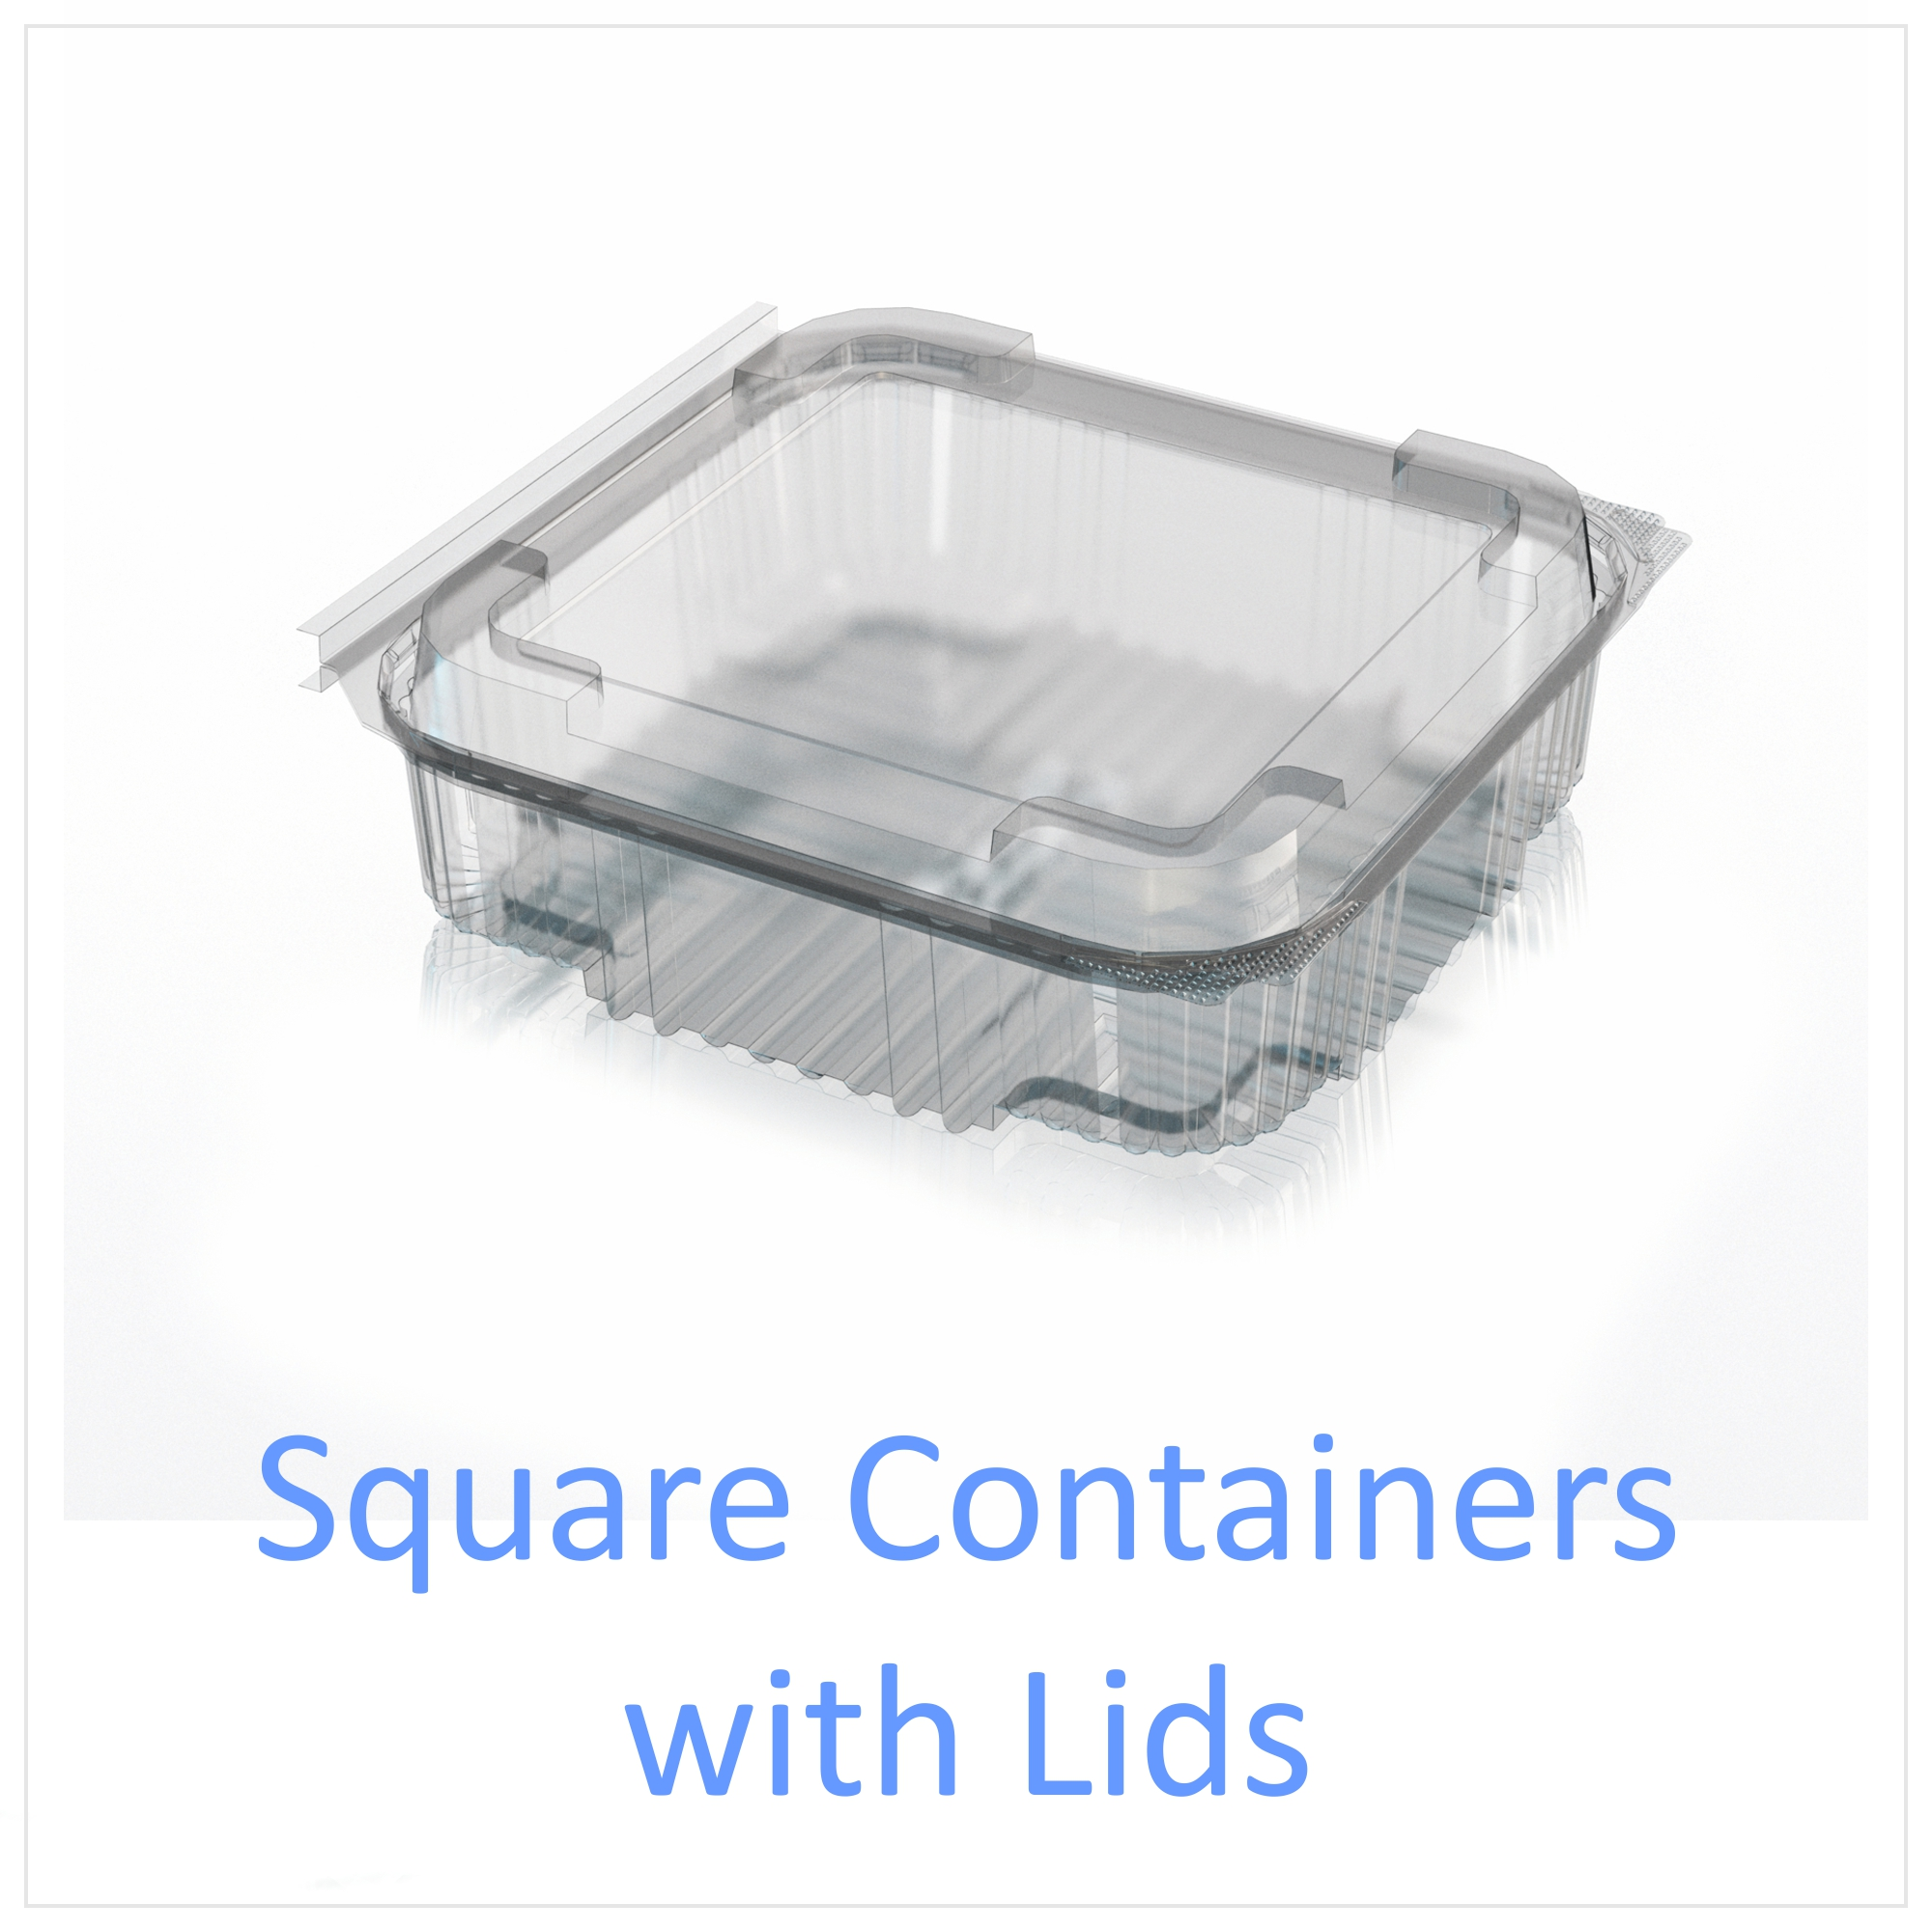 Square Containers with Lids